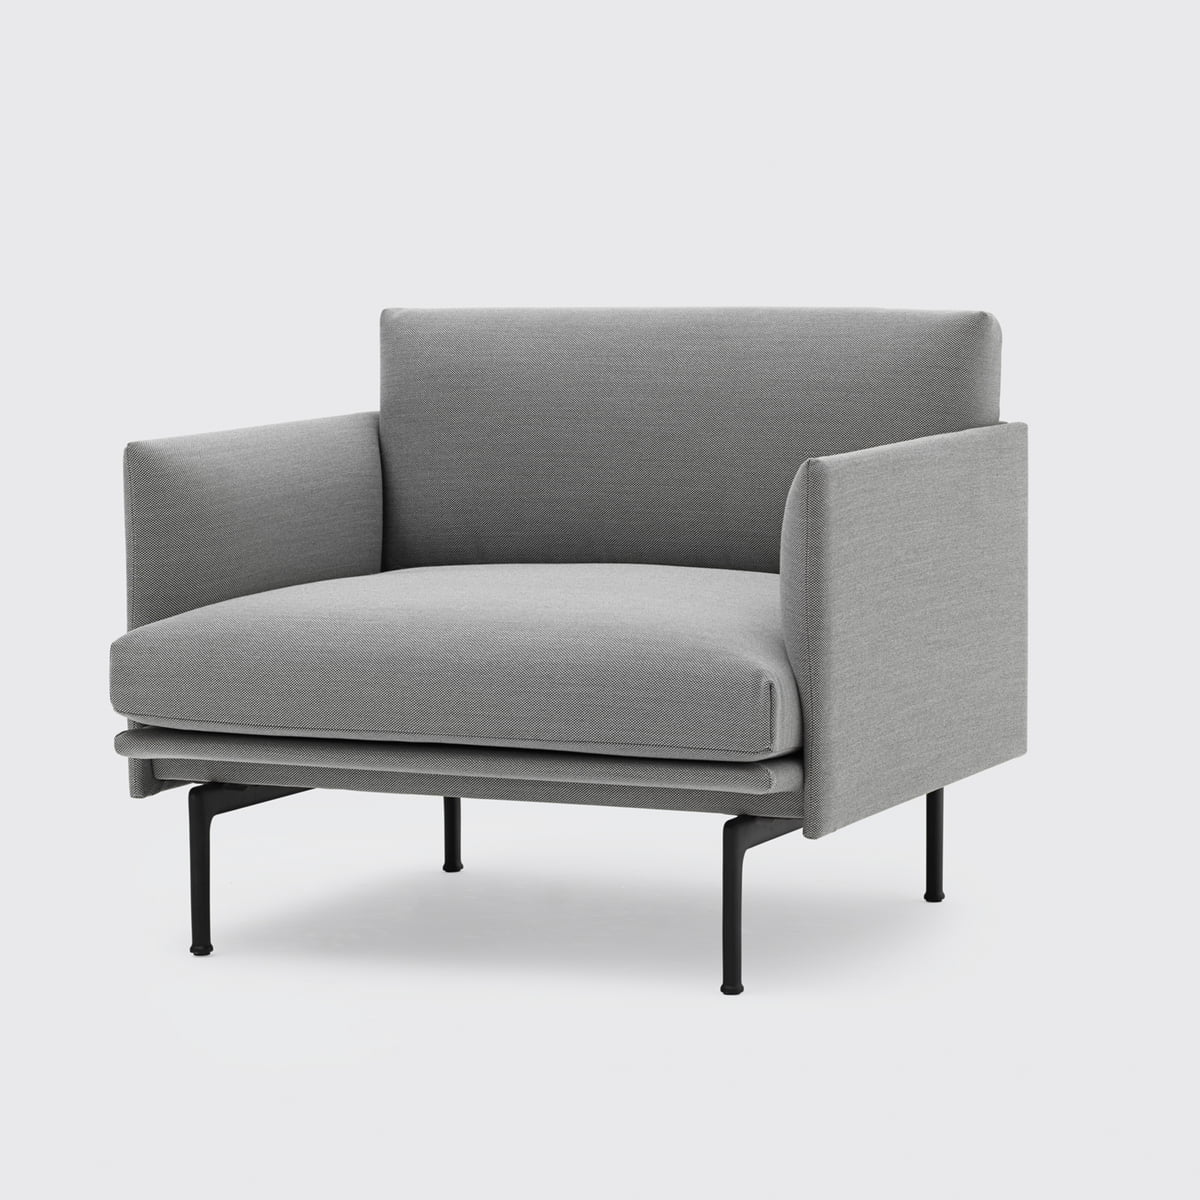 Connox Sessel Outline Sessel Von Muuto Connox At